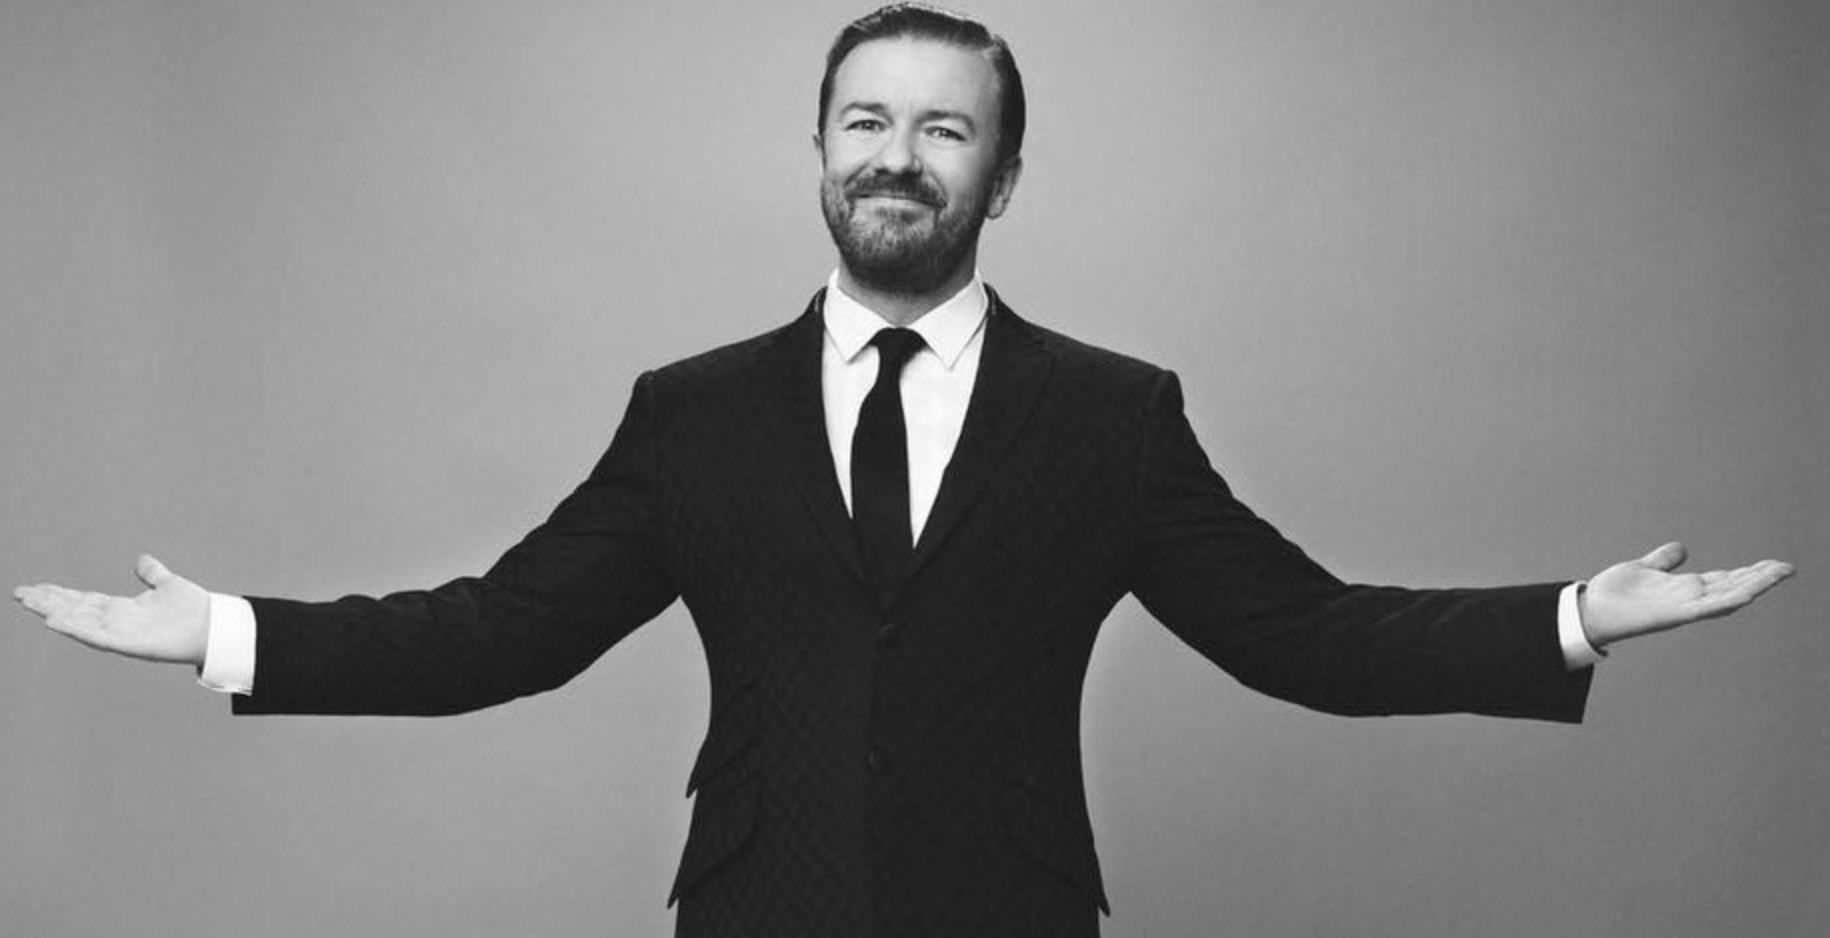 Comdian and actor Ricky Gervais